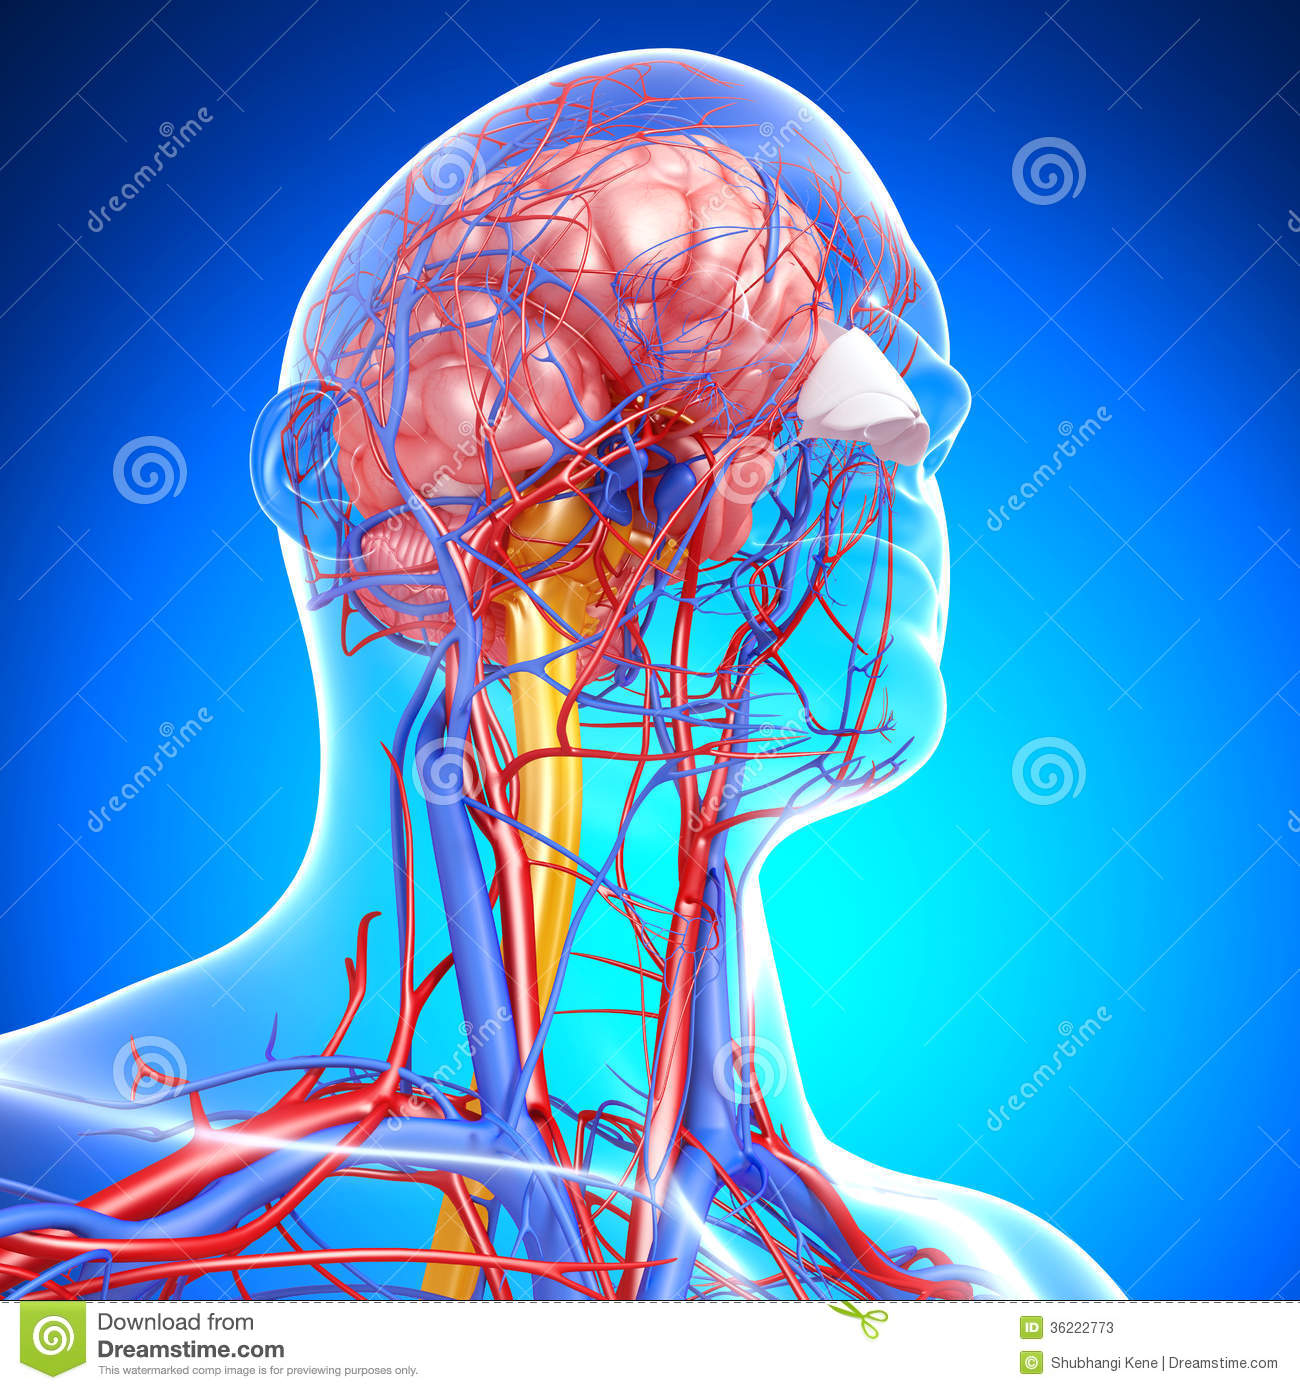 Circulatory And Nervous System Of Head Stock Photos